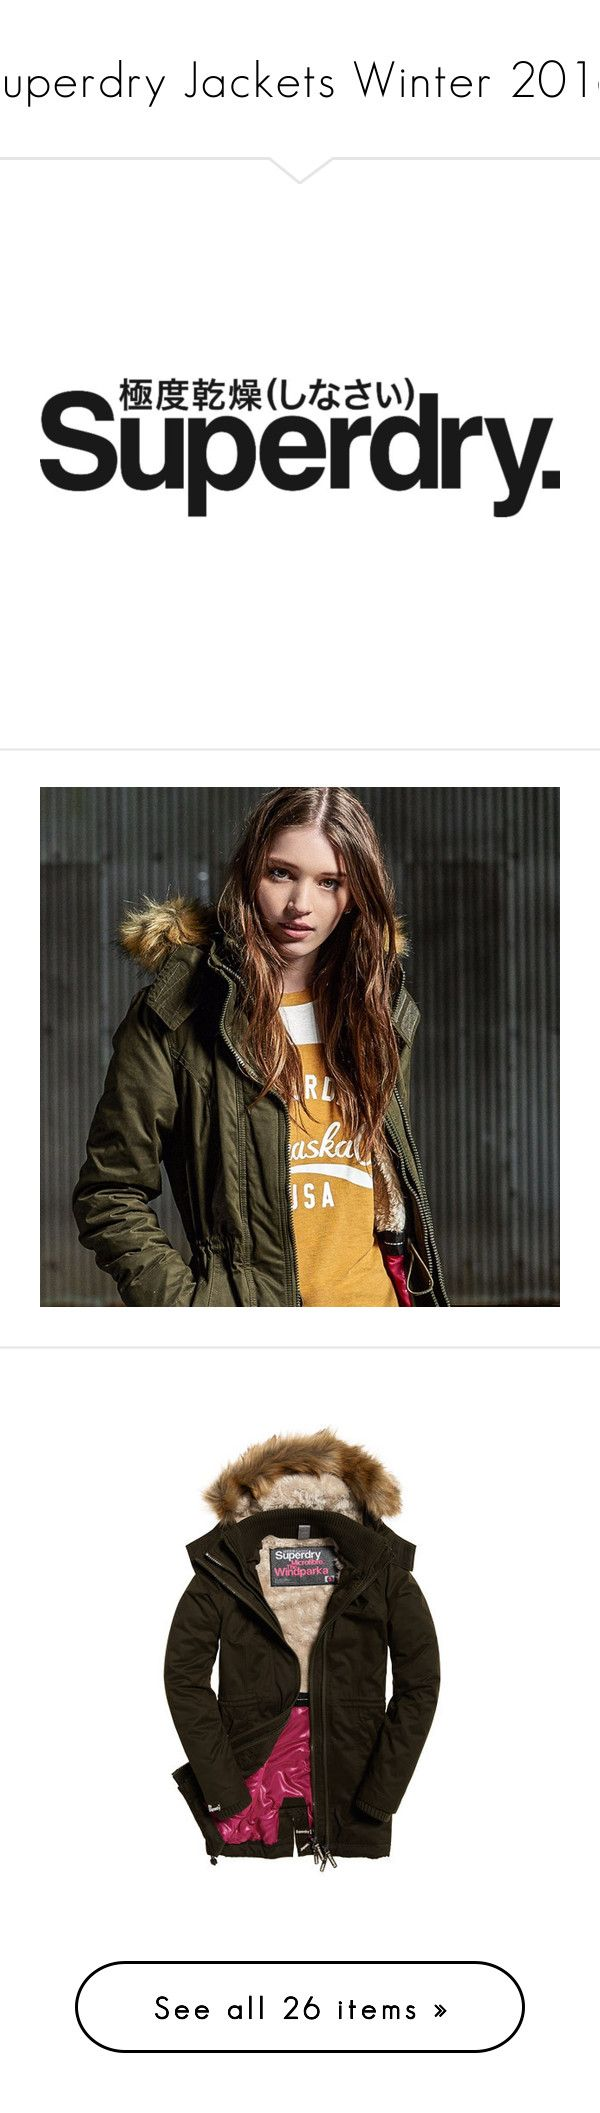 """""""Superdry Jackets Winter 2016"""" by superdry ❤ liked on Polyvore featuring text, drawings, outerwear, jackets, microfiber jacket, superdry, tall jackets, superdry jacket, brown jacket and coats"""